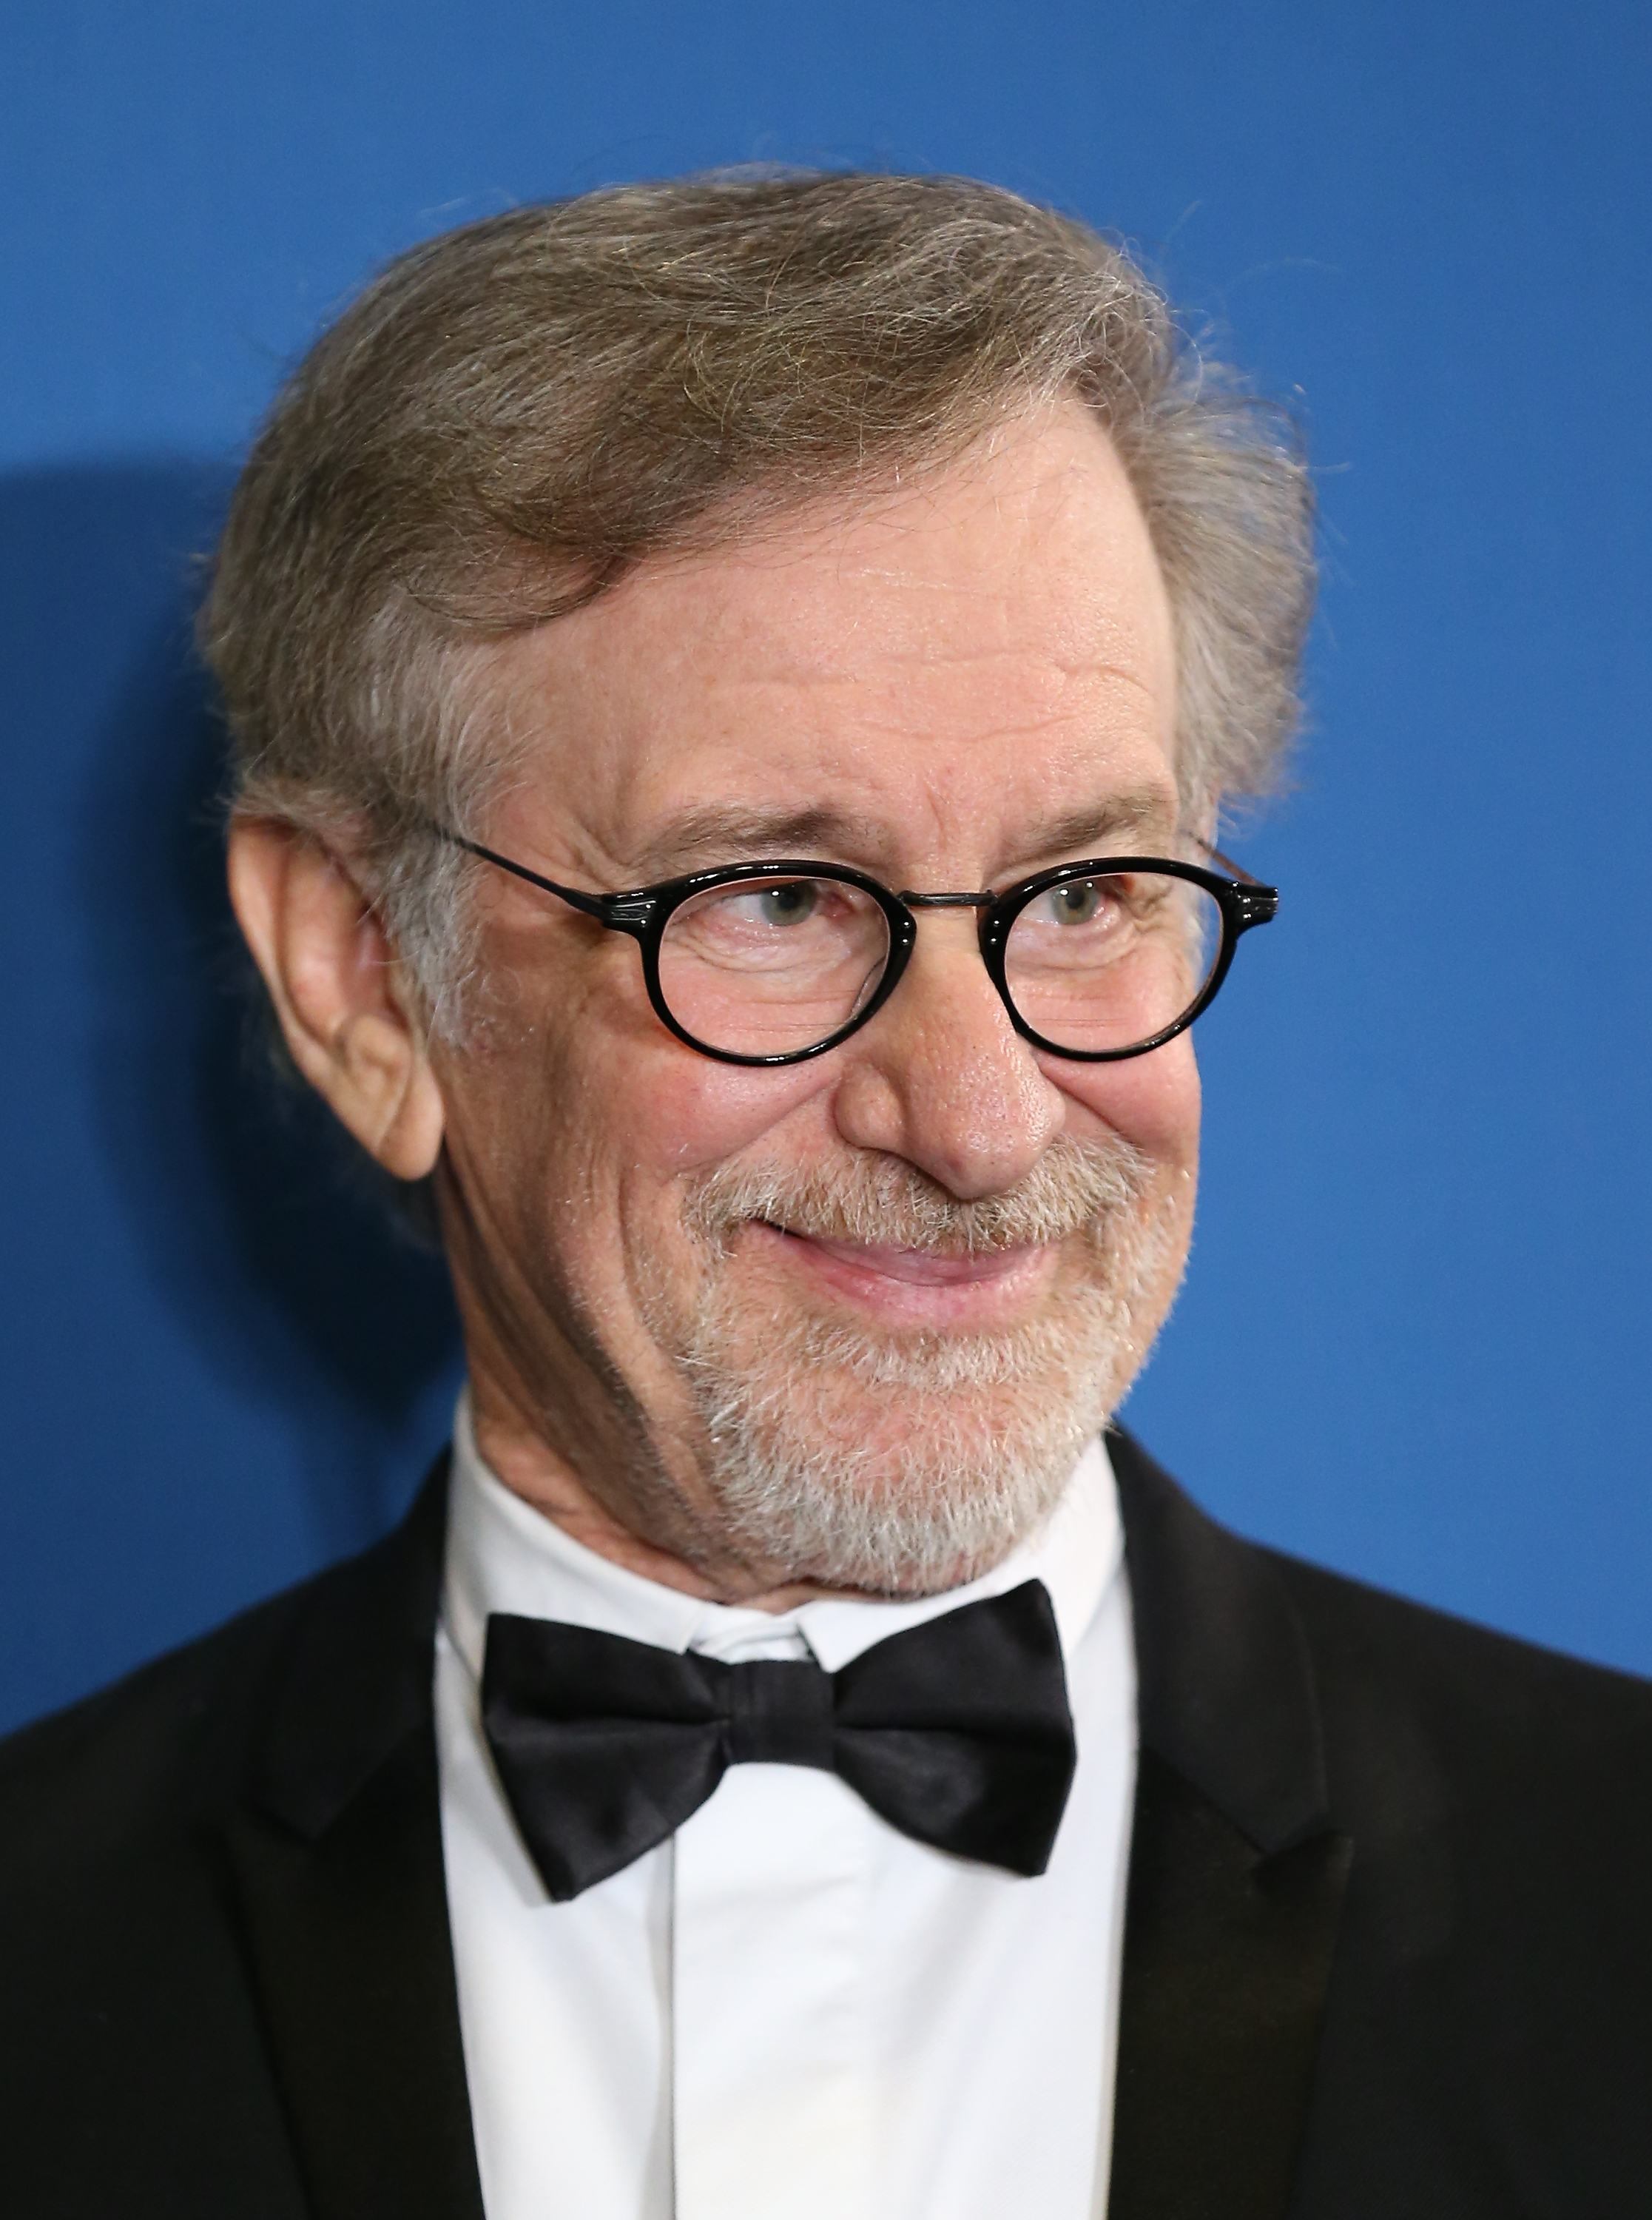 Steven Spielberg at the 67th Annual Directors Guild Of America Awards in Century City, Calif. on Feb. 7, 2015.